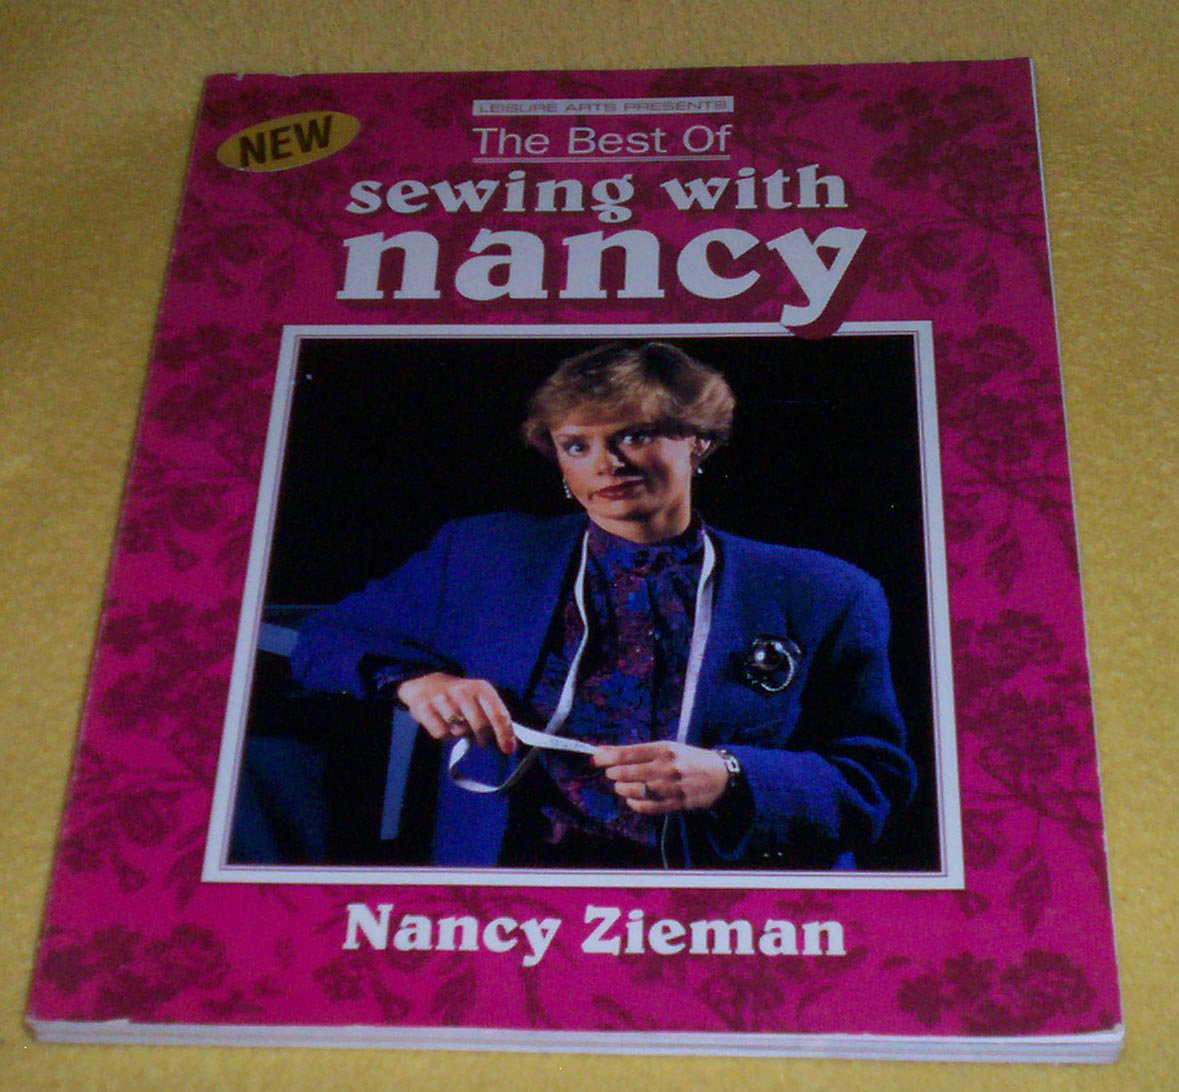 The Best Of Sewing With Nancy Zieman